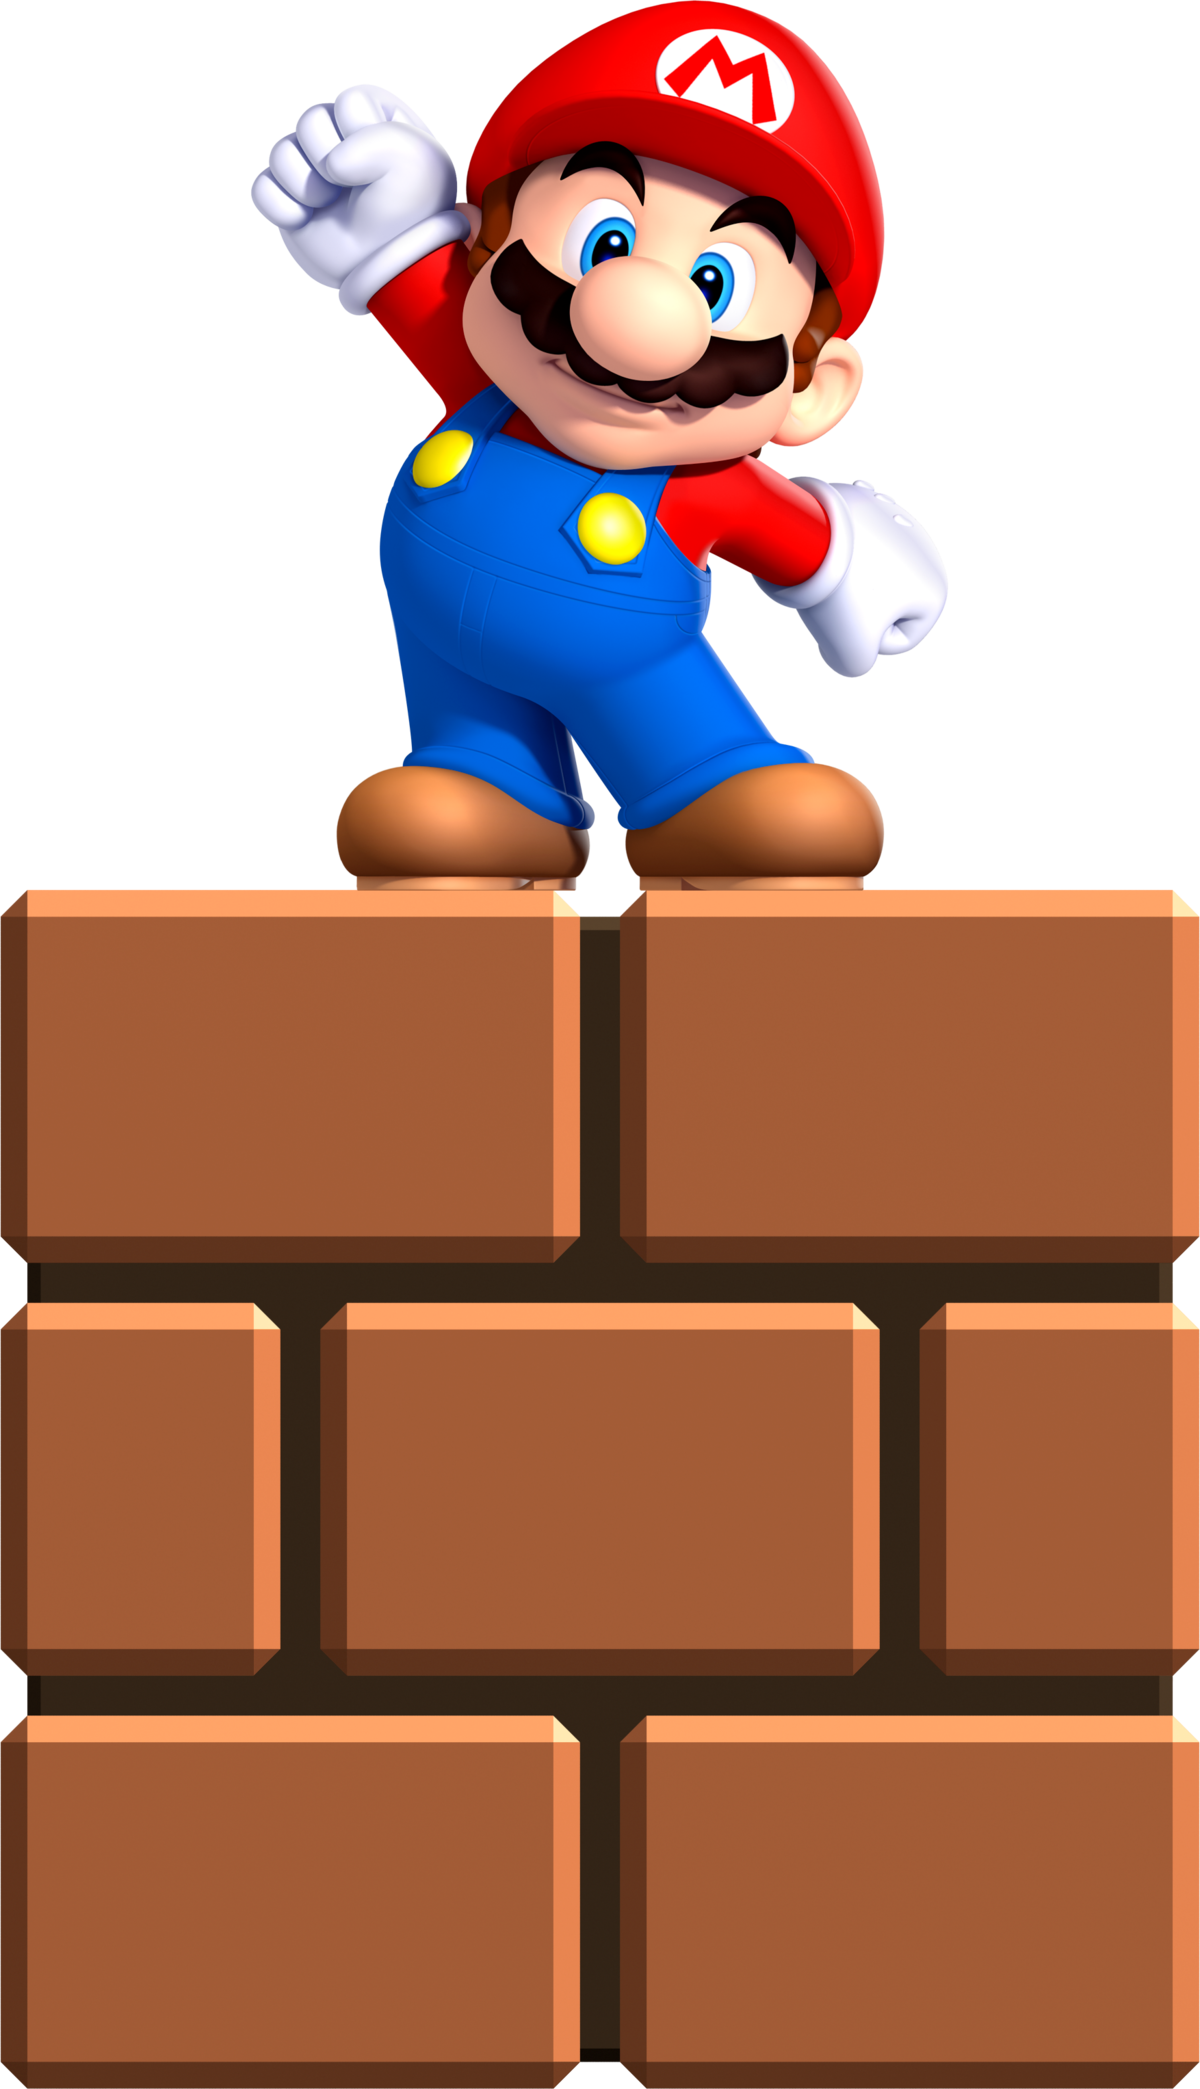 Mini Mario Form Super Mario Wiki The Mario Encyclopedia